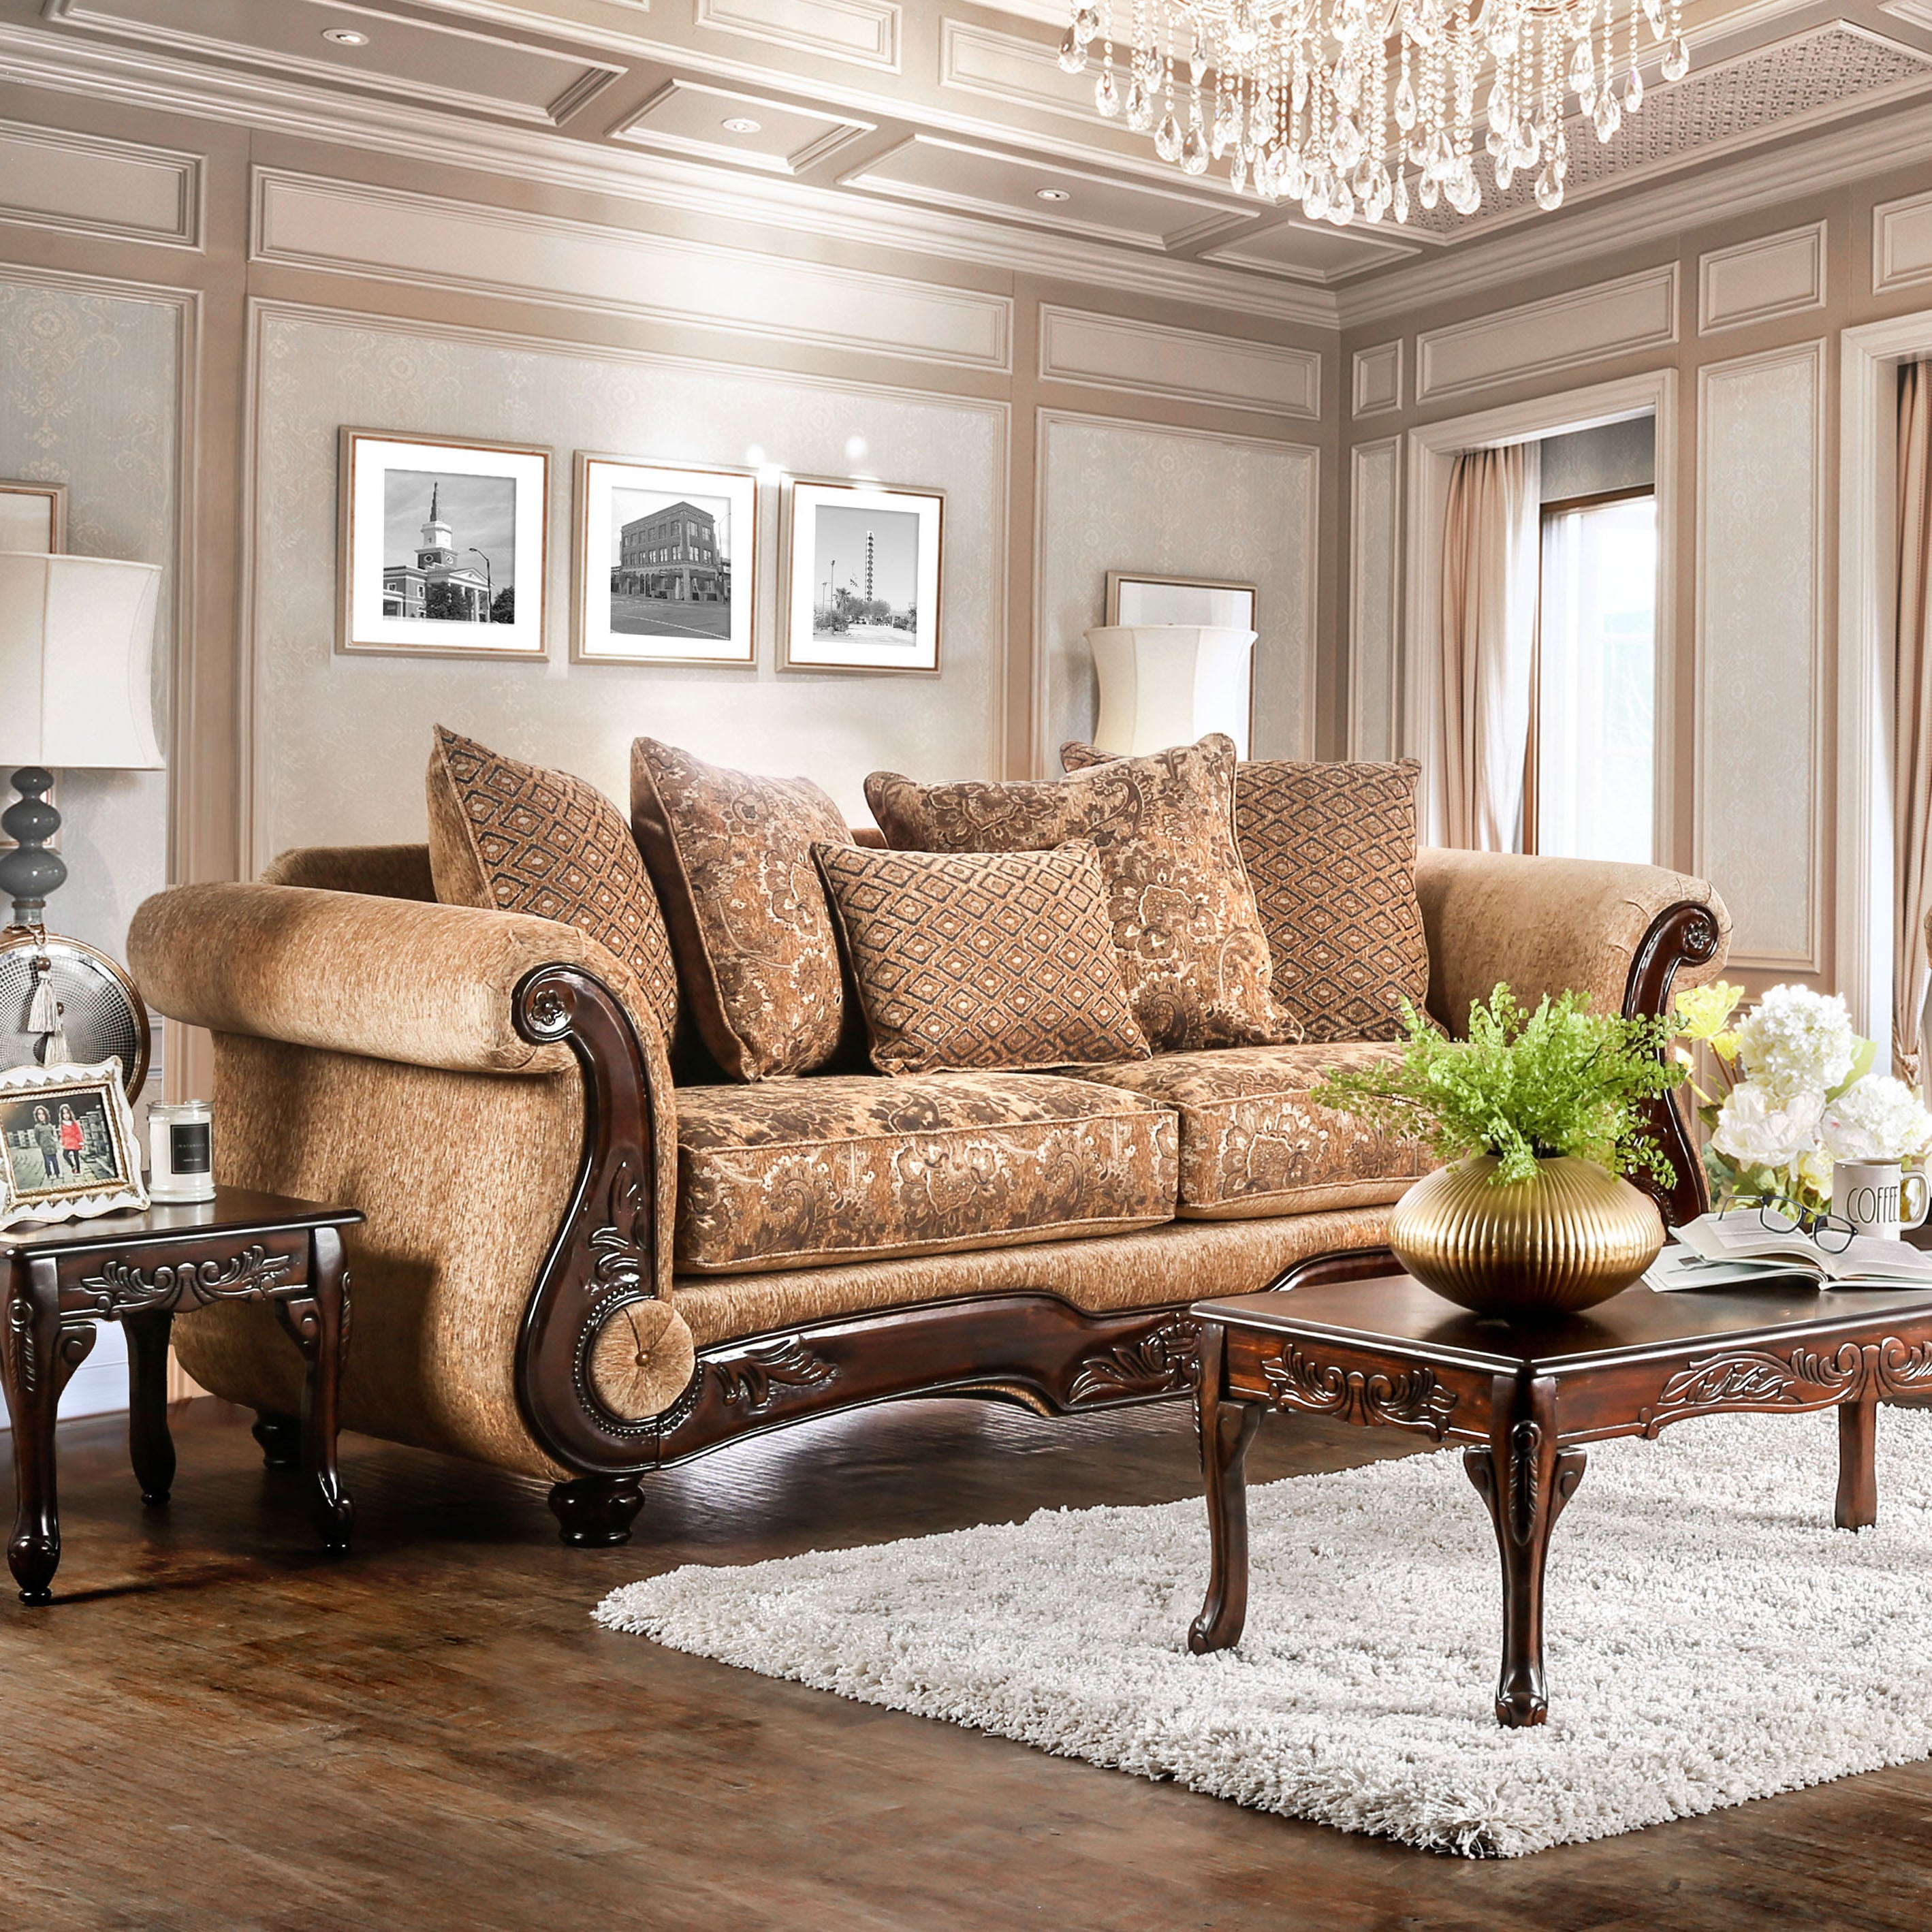 Good Ersa Traditional Wood Trim Chenille Fabric Gold/Bronze Sofa By Furniture Of  America   Free Shipping Today   Overstock.com   20820170